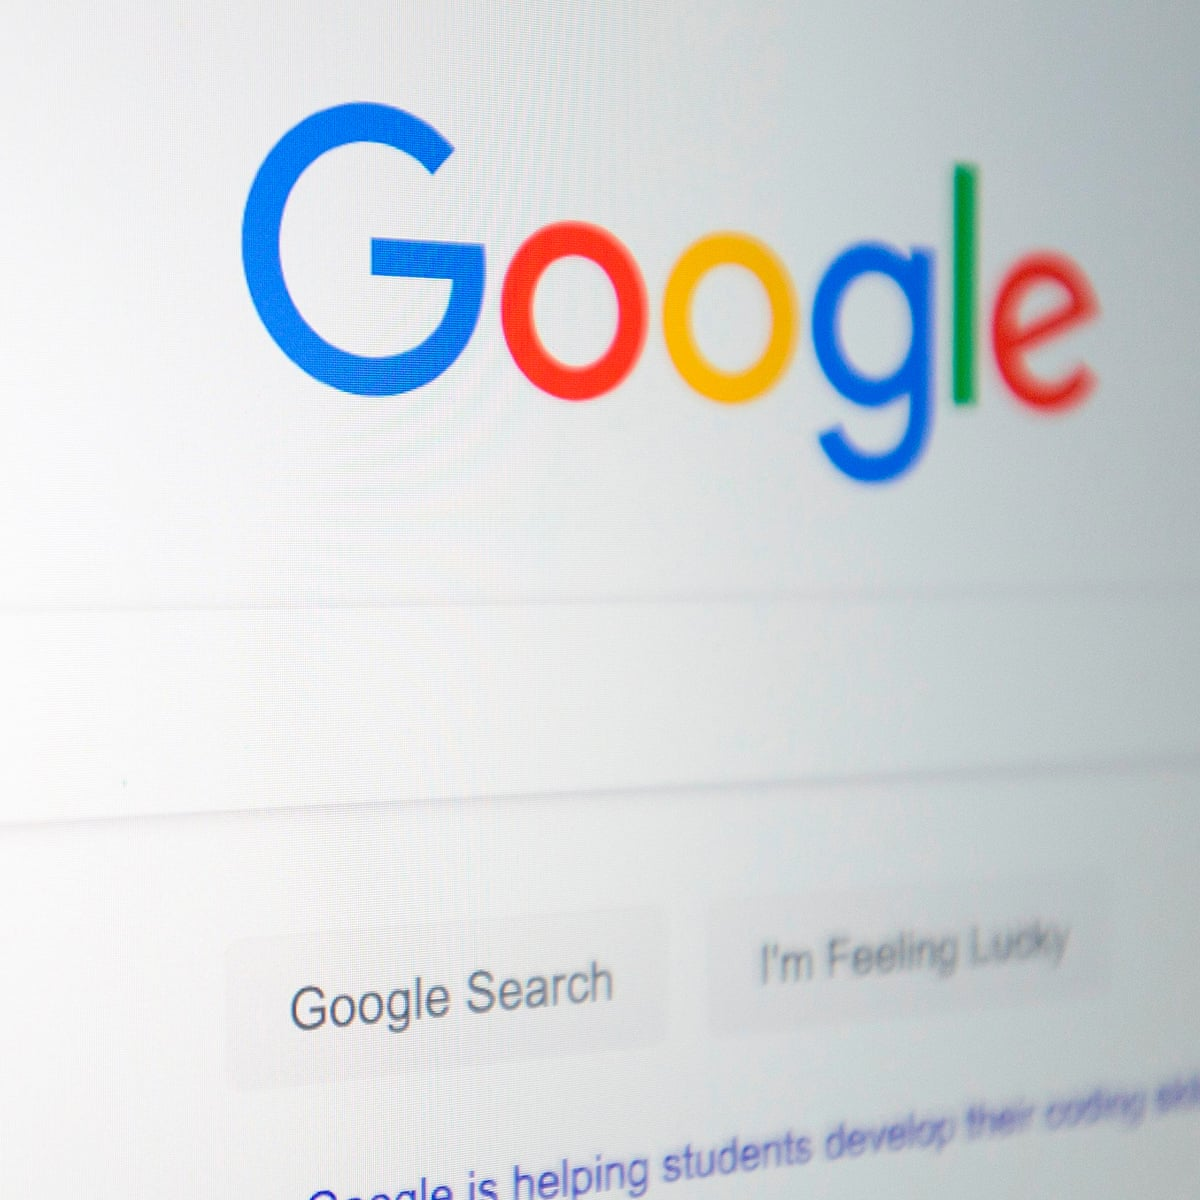 How can I get better at using Google search? | Technology | The ...